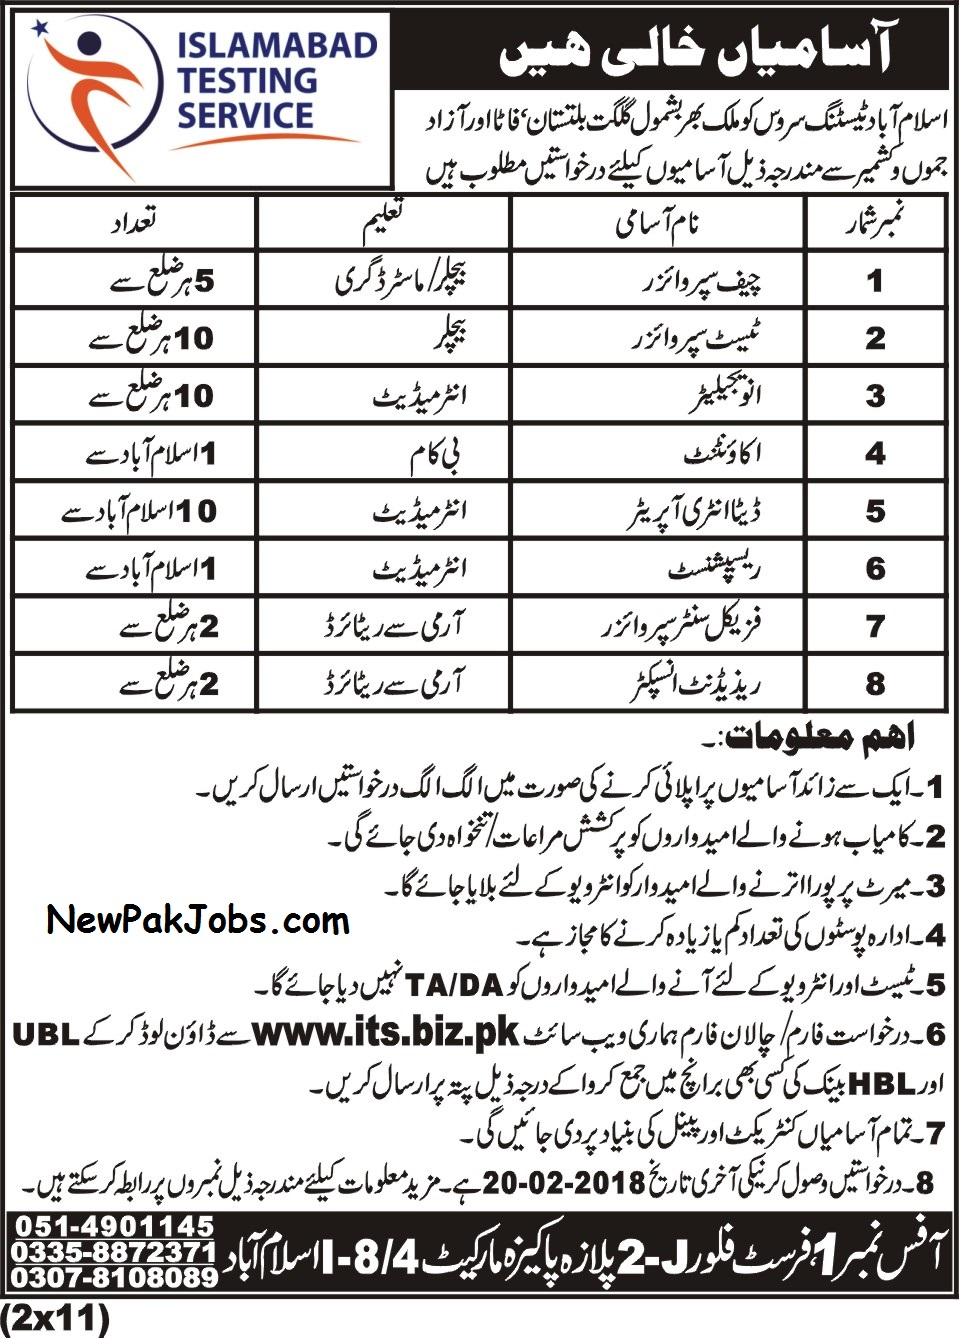 4000+ New Jobs in Islamabad Testing Service ITS, Sunday 4 Feb 2018